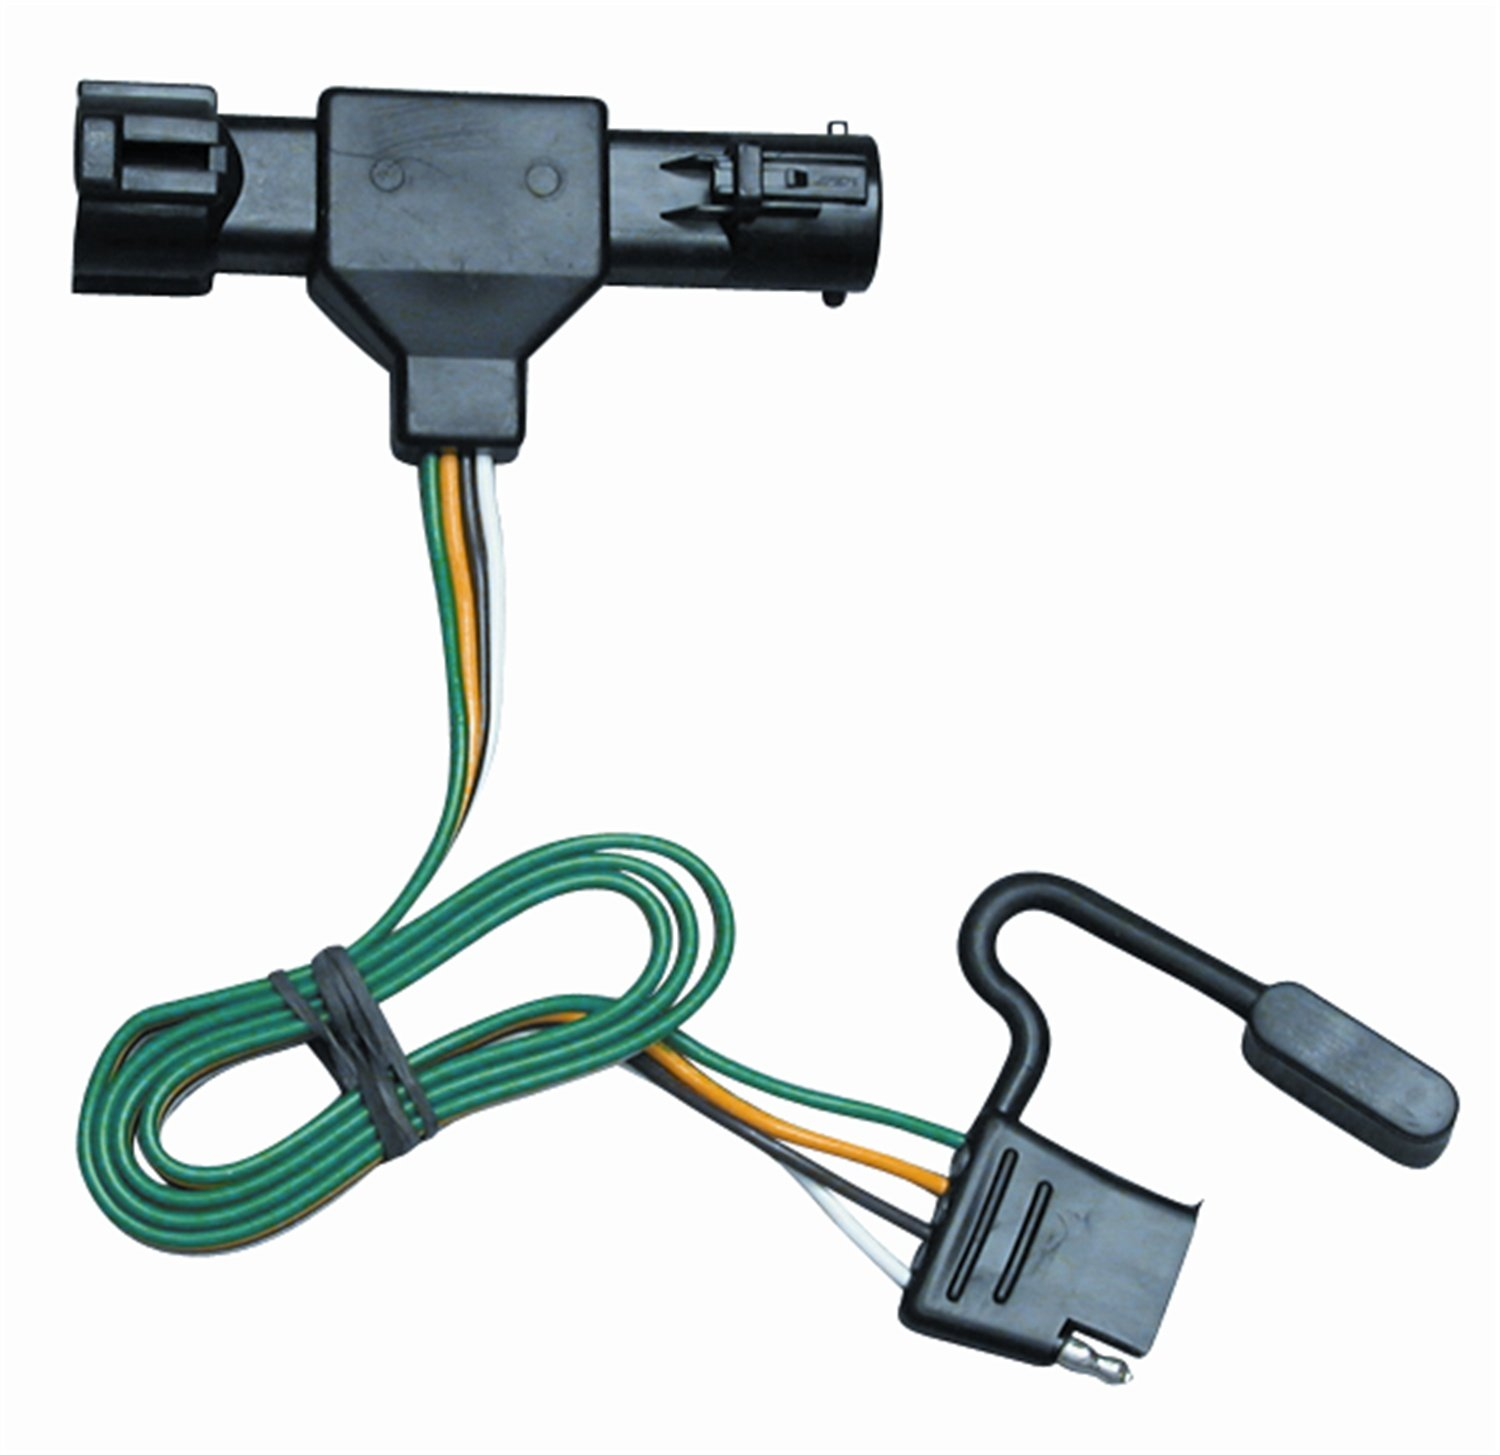 Amazon.com: Vehicle To Trailer Wiring Connector For 86-92 Ford Ranger  Pickup Plug Play: Automotive